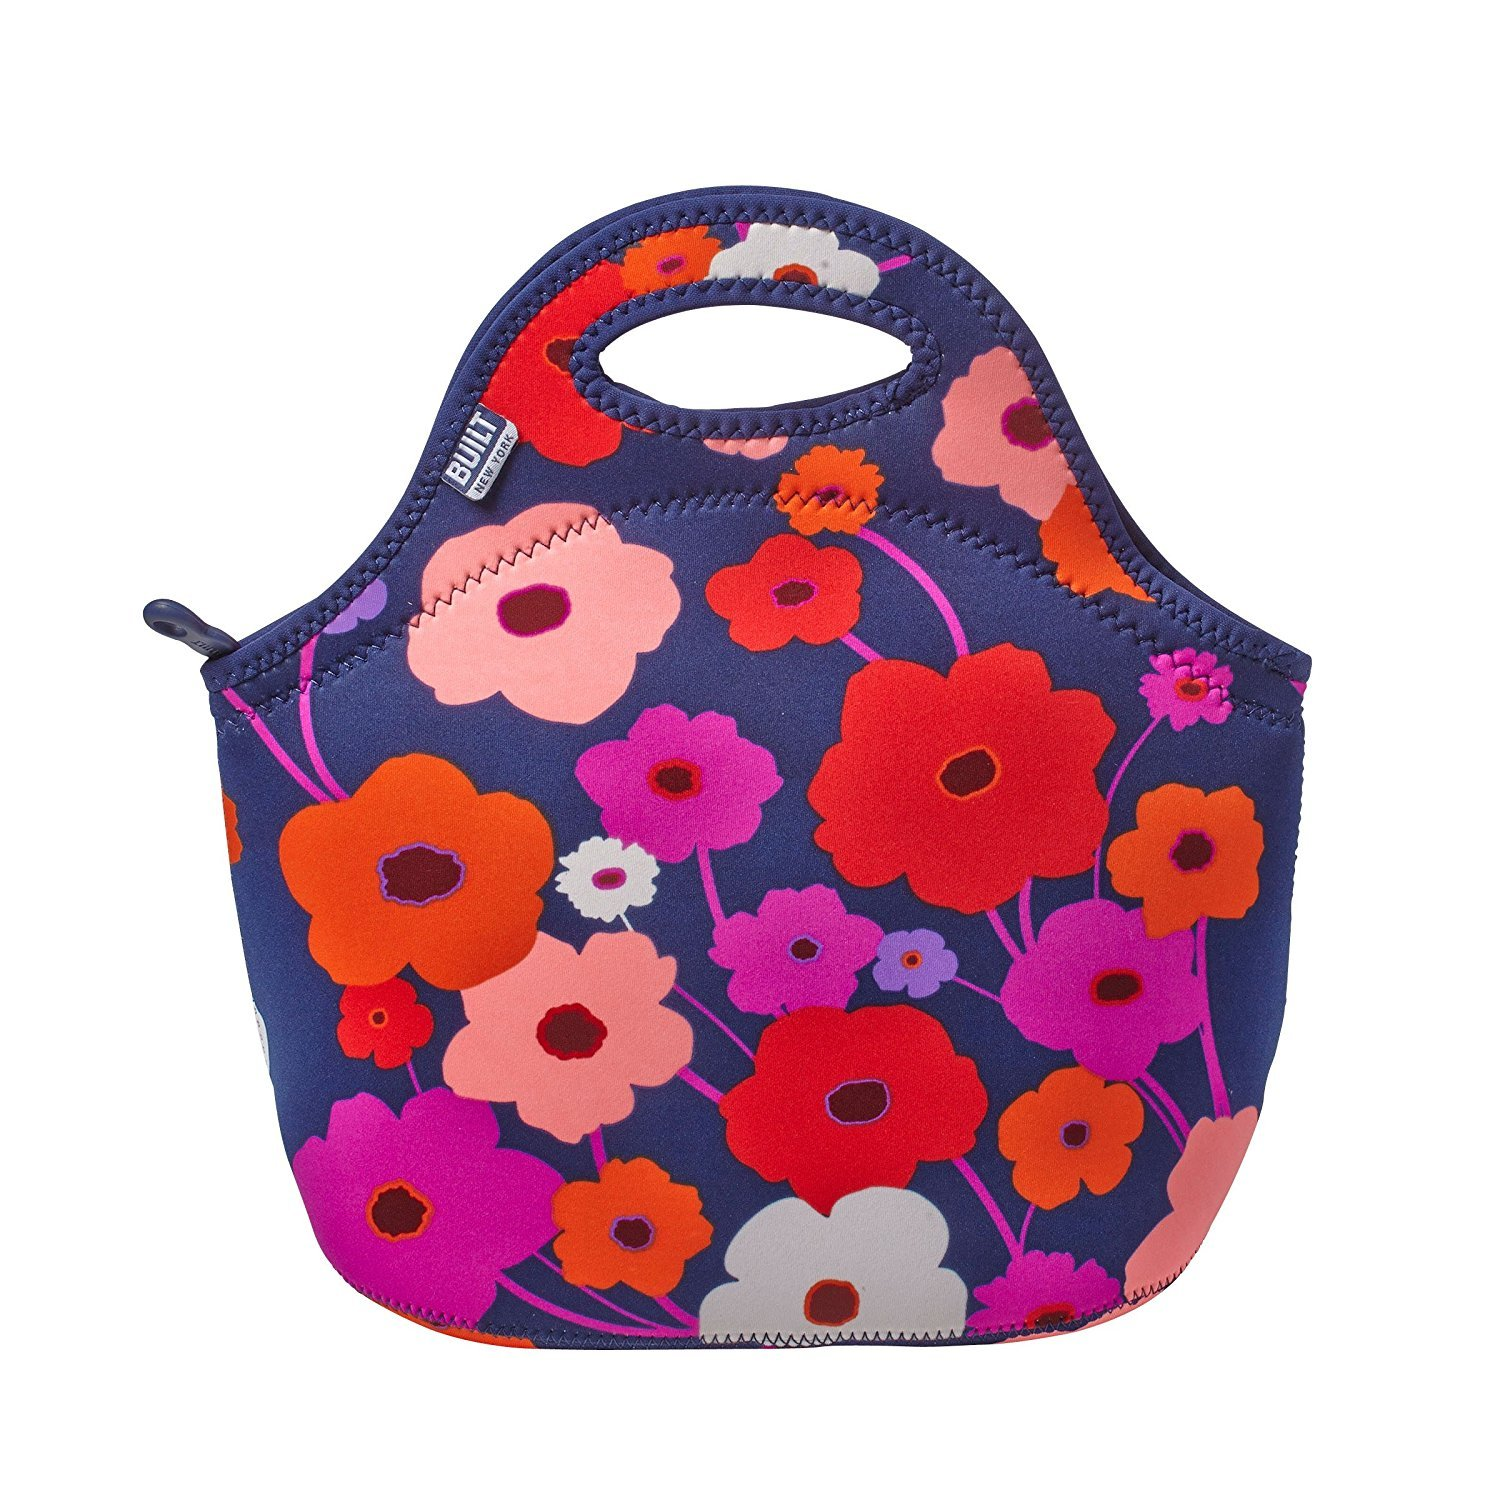 Built NY 5159629CAN Gourmet to Go Neoprene Lunch Tote, Lush Flower, Medium